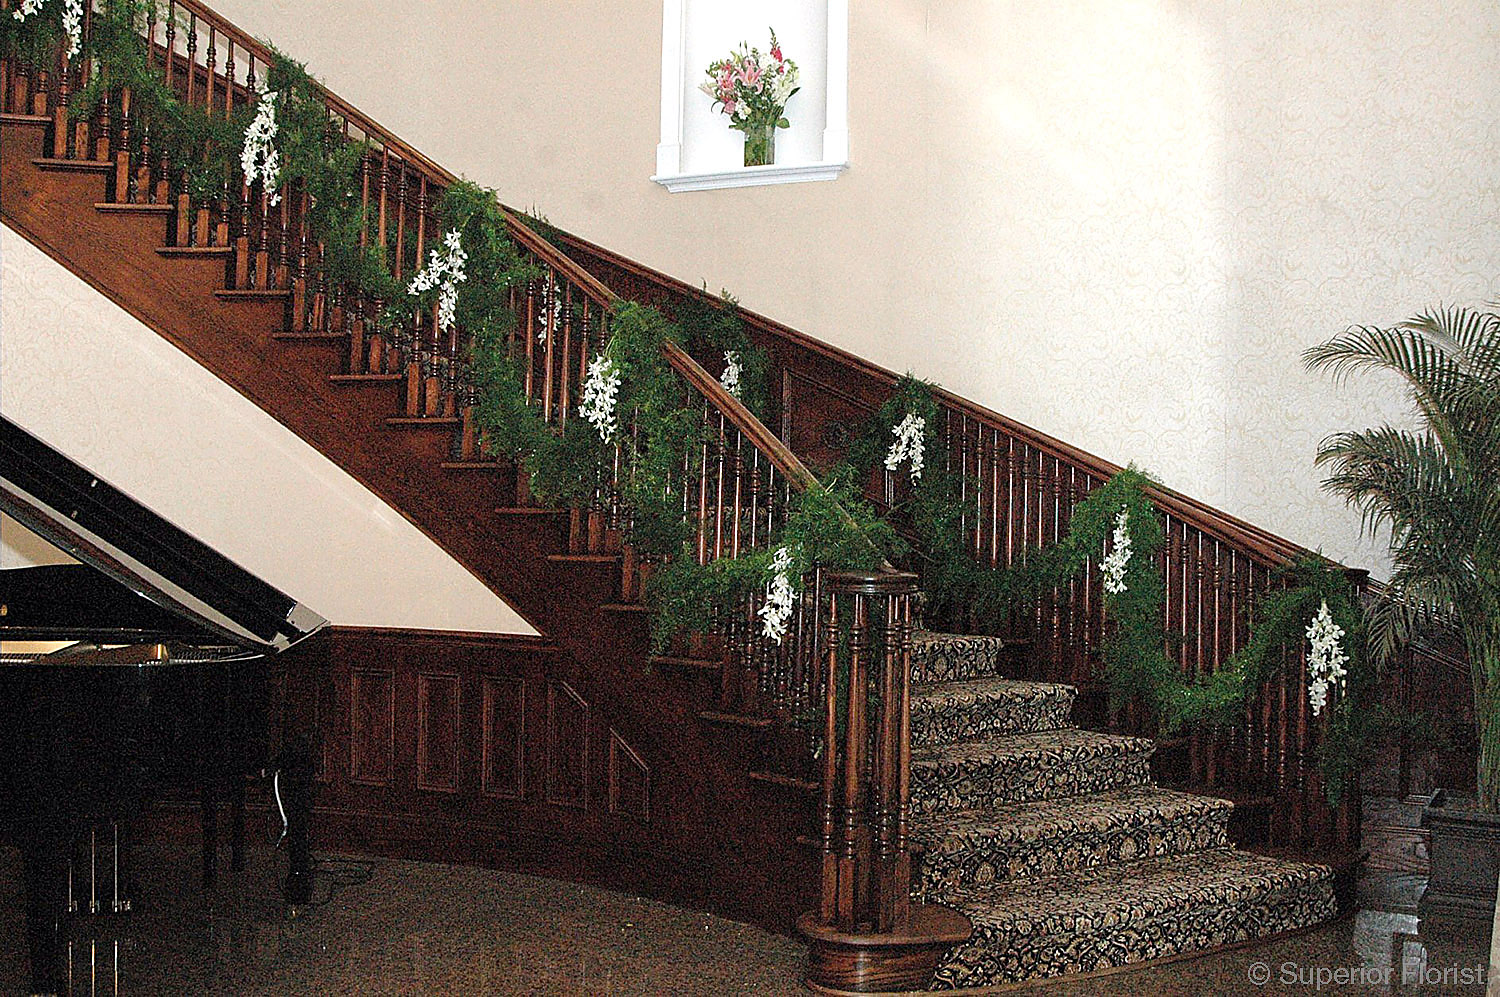 Superior Florist – Wedding Décor:  Staircase banister decorated with garland of greenery and swags of Dendrobium orchids.